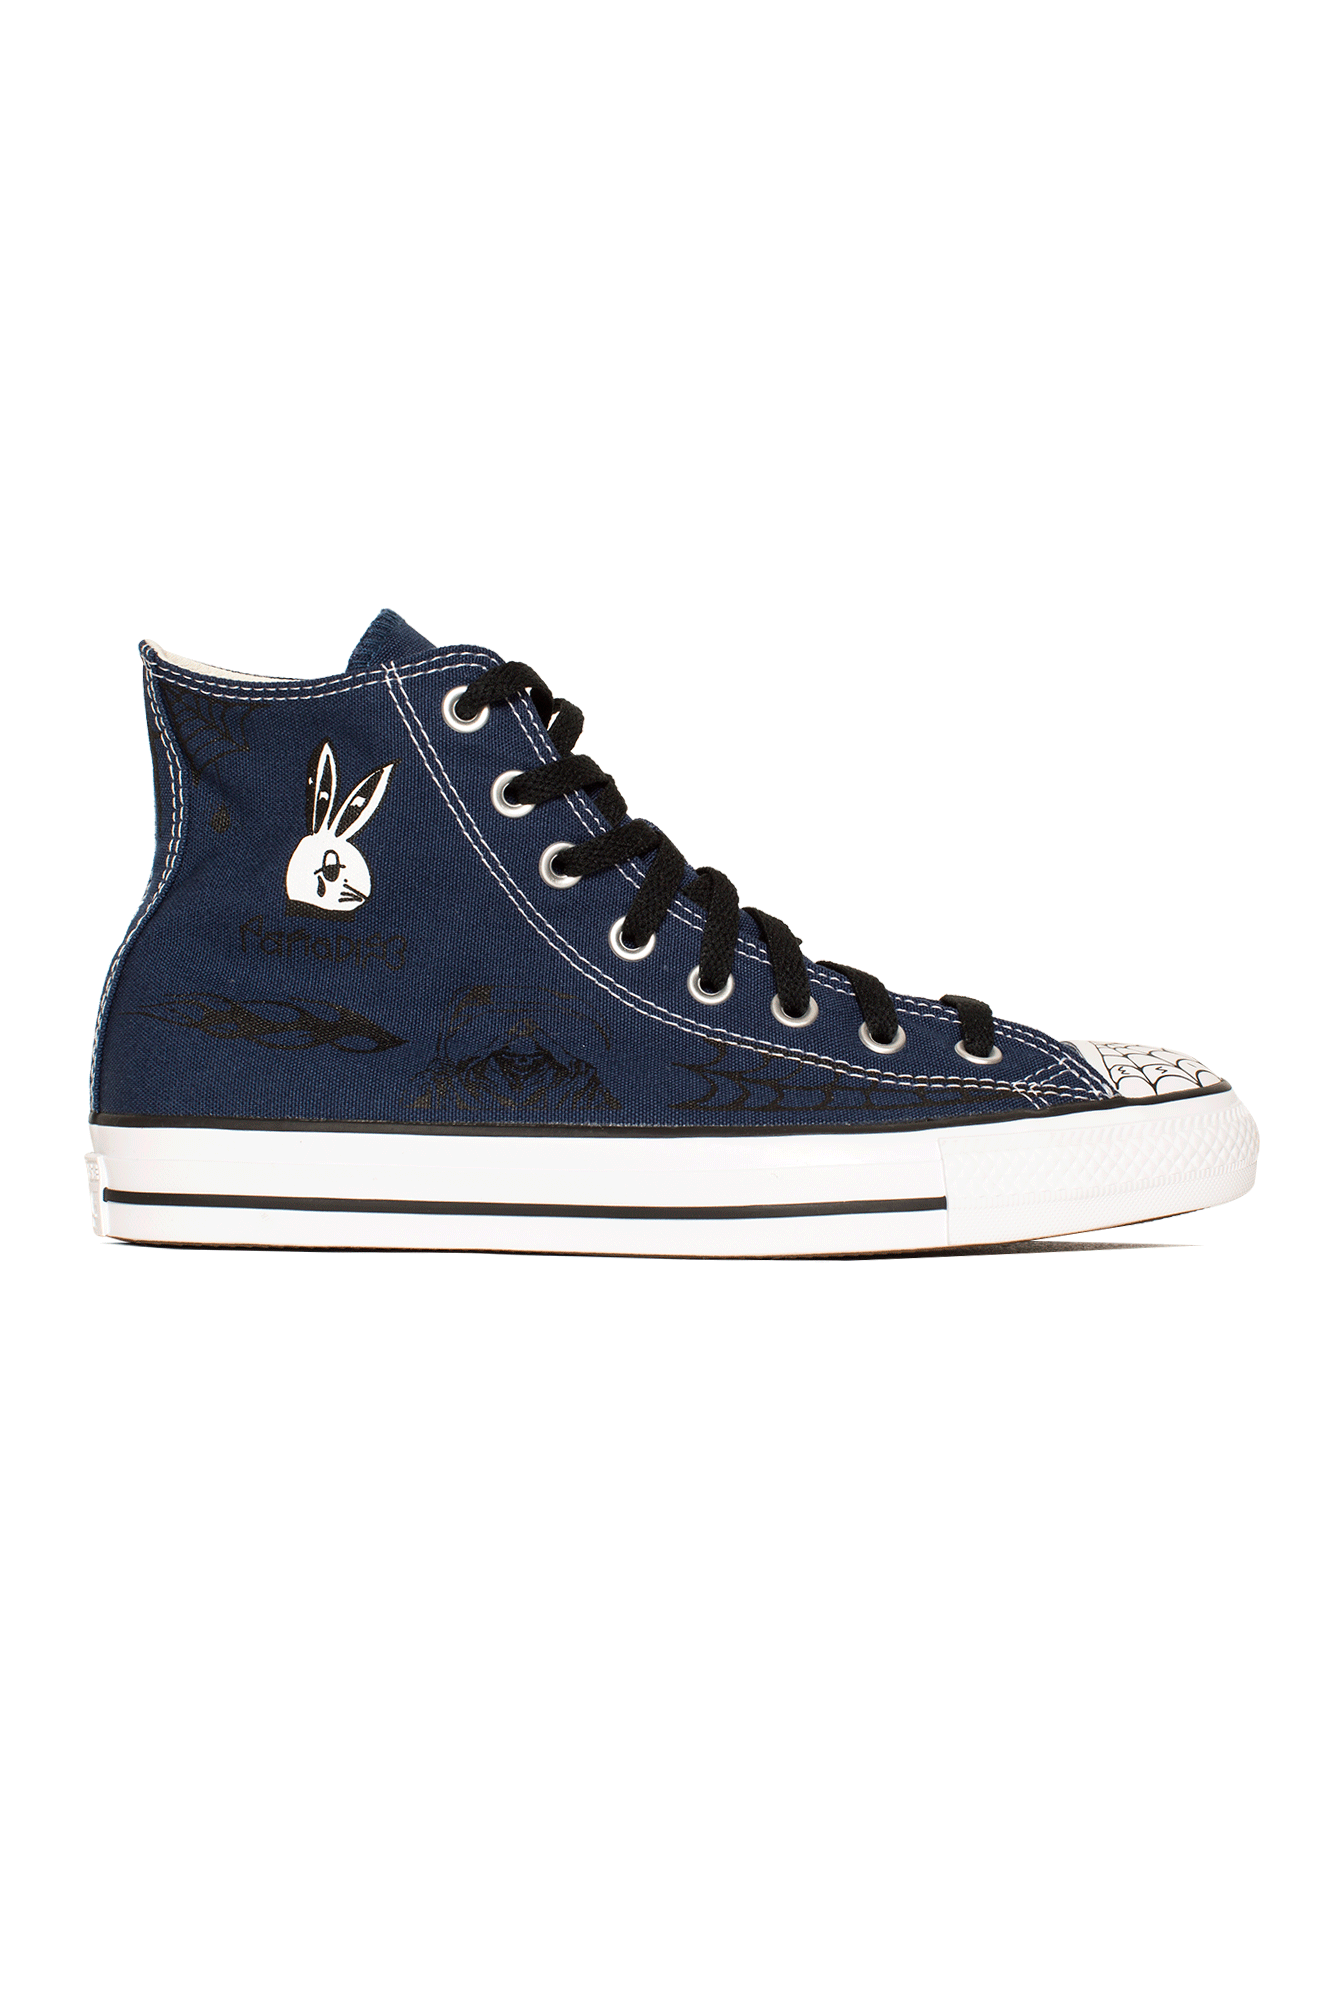 Chuck Taylor All Star Pro SP Hi Blue